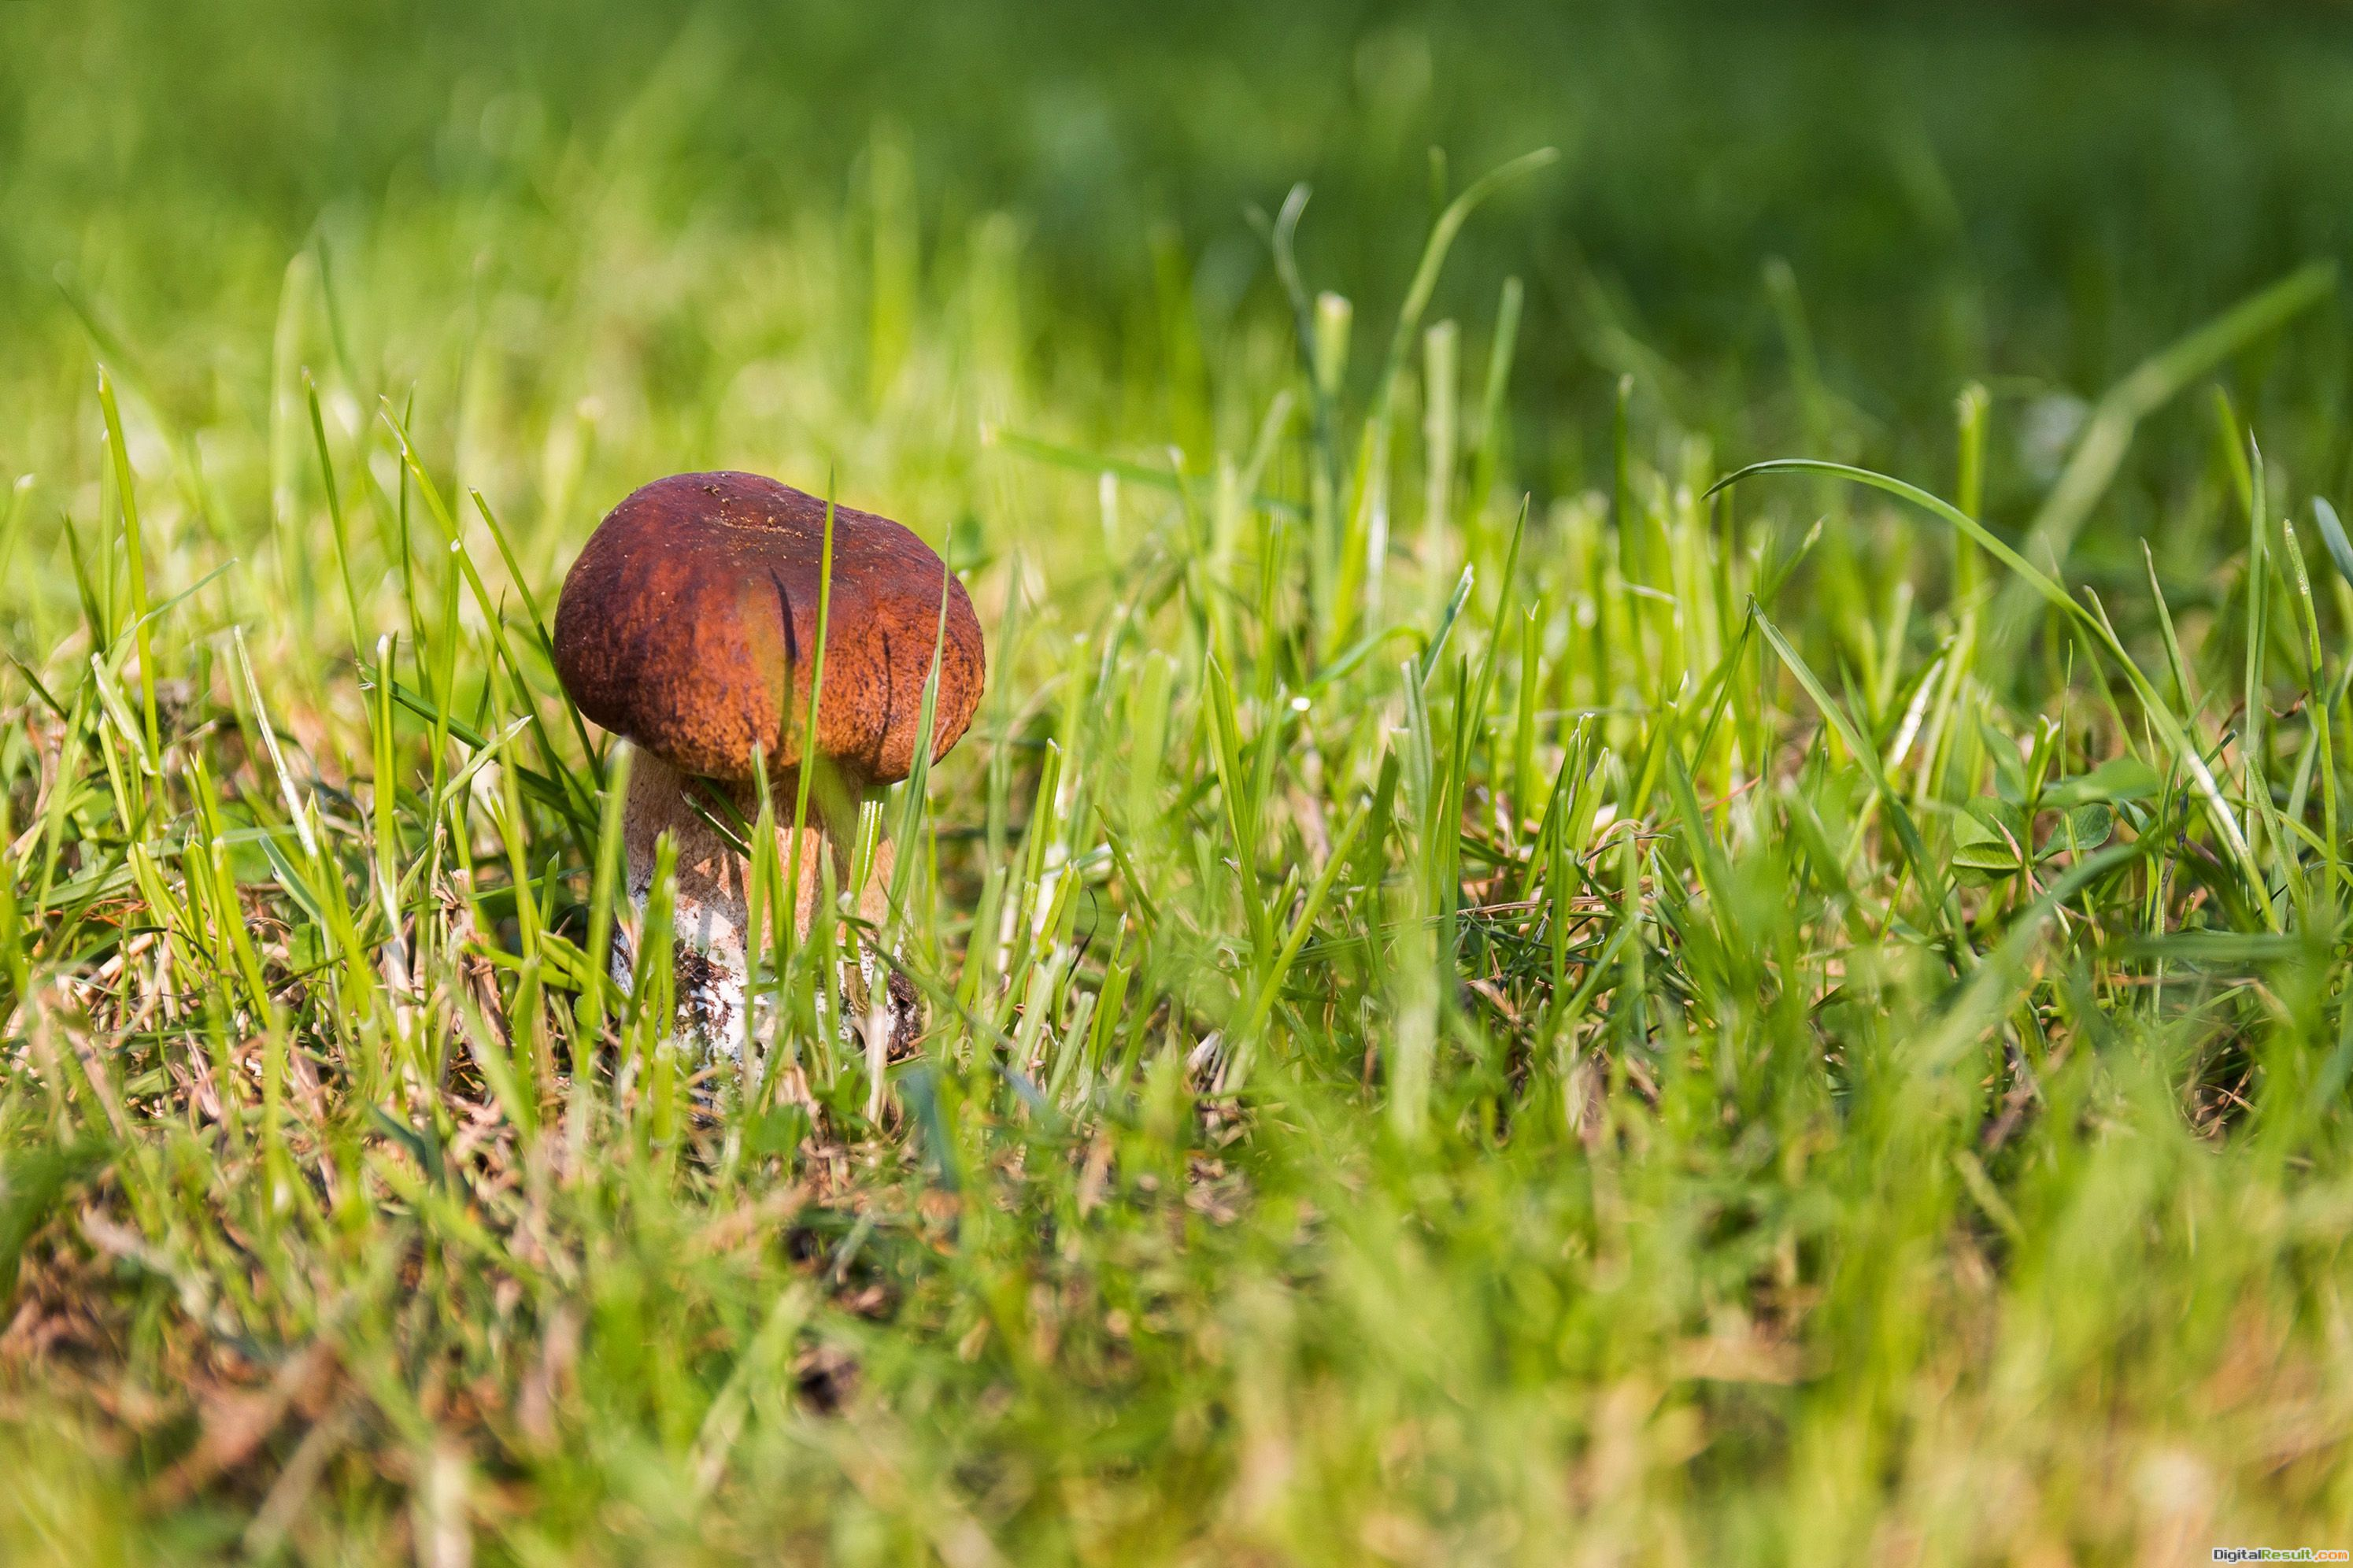 Fantastic Free Images for a Mushroom Wallpaper, Background or Texture 233